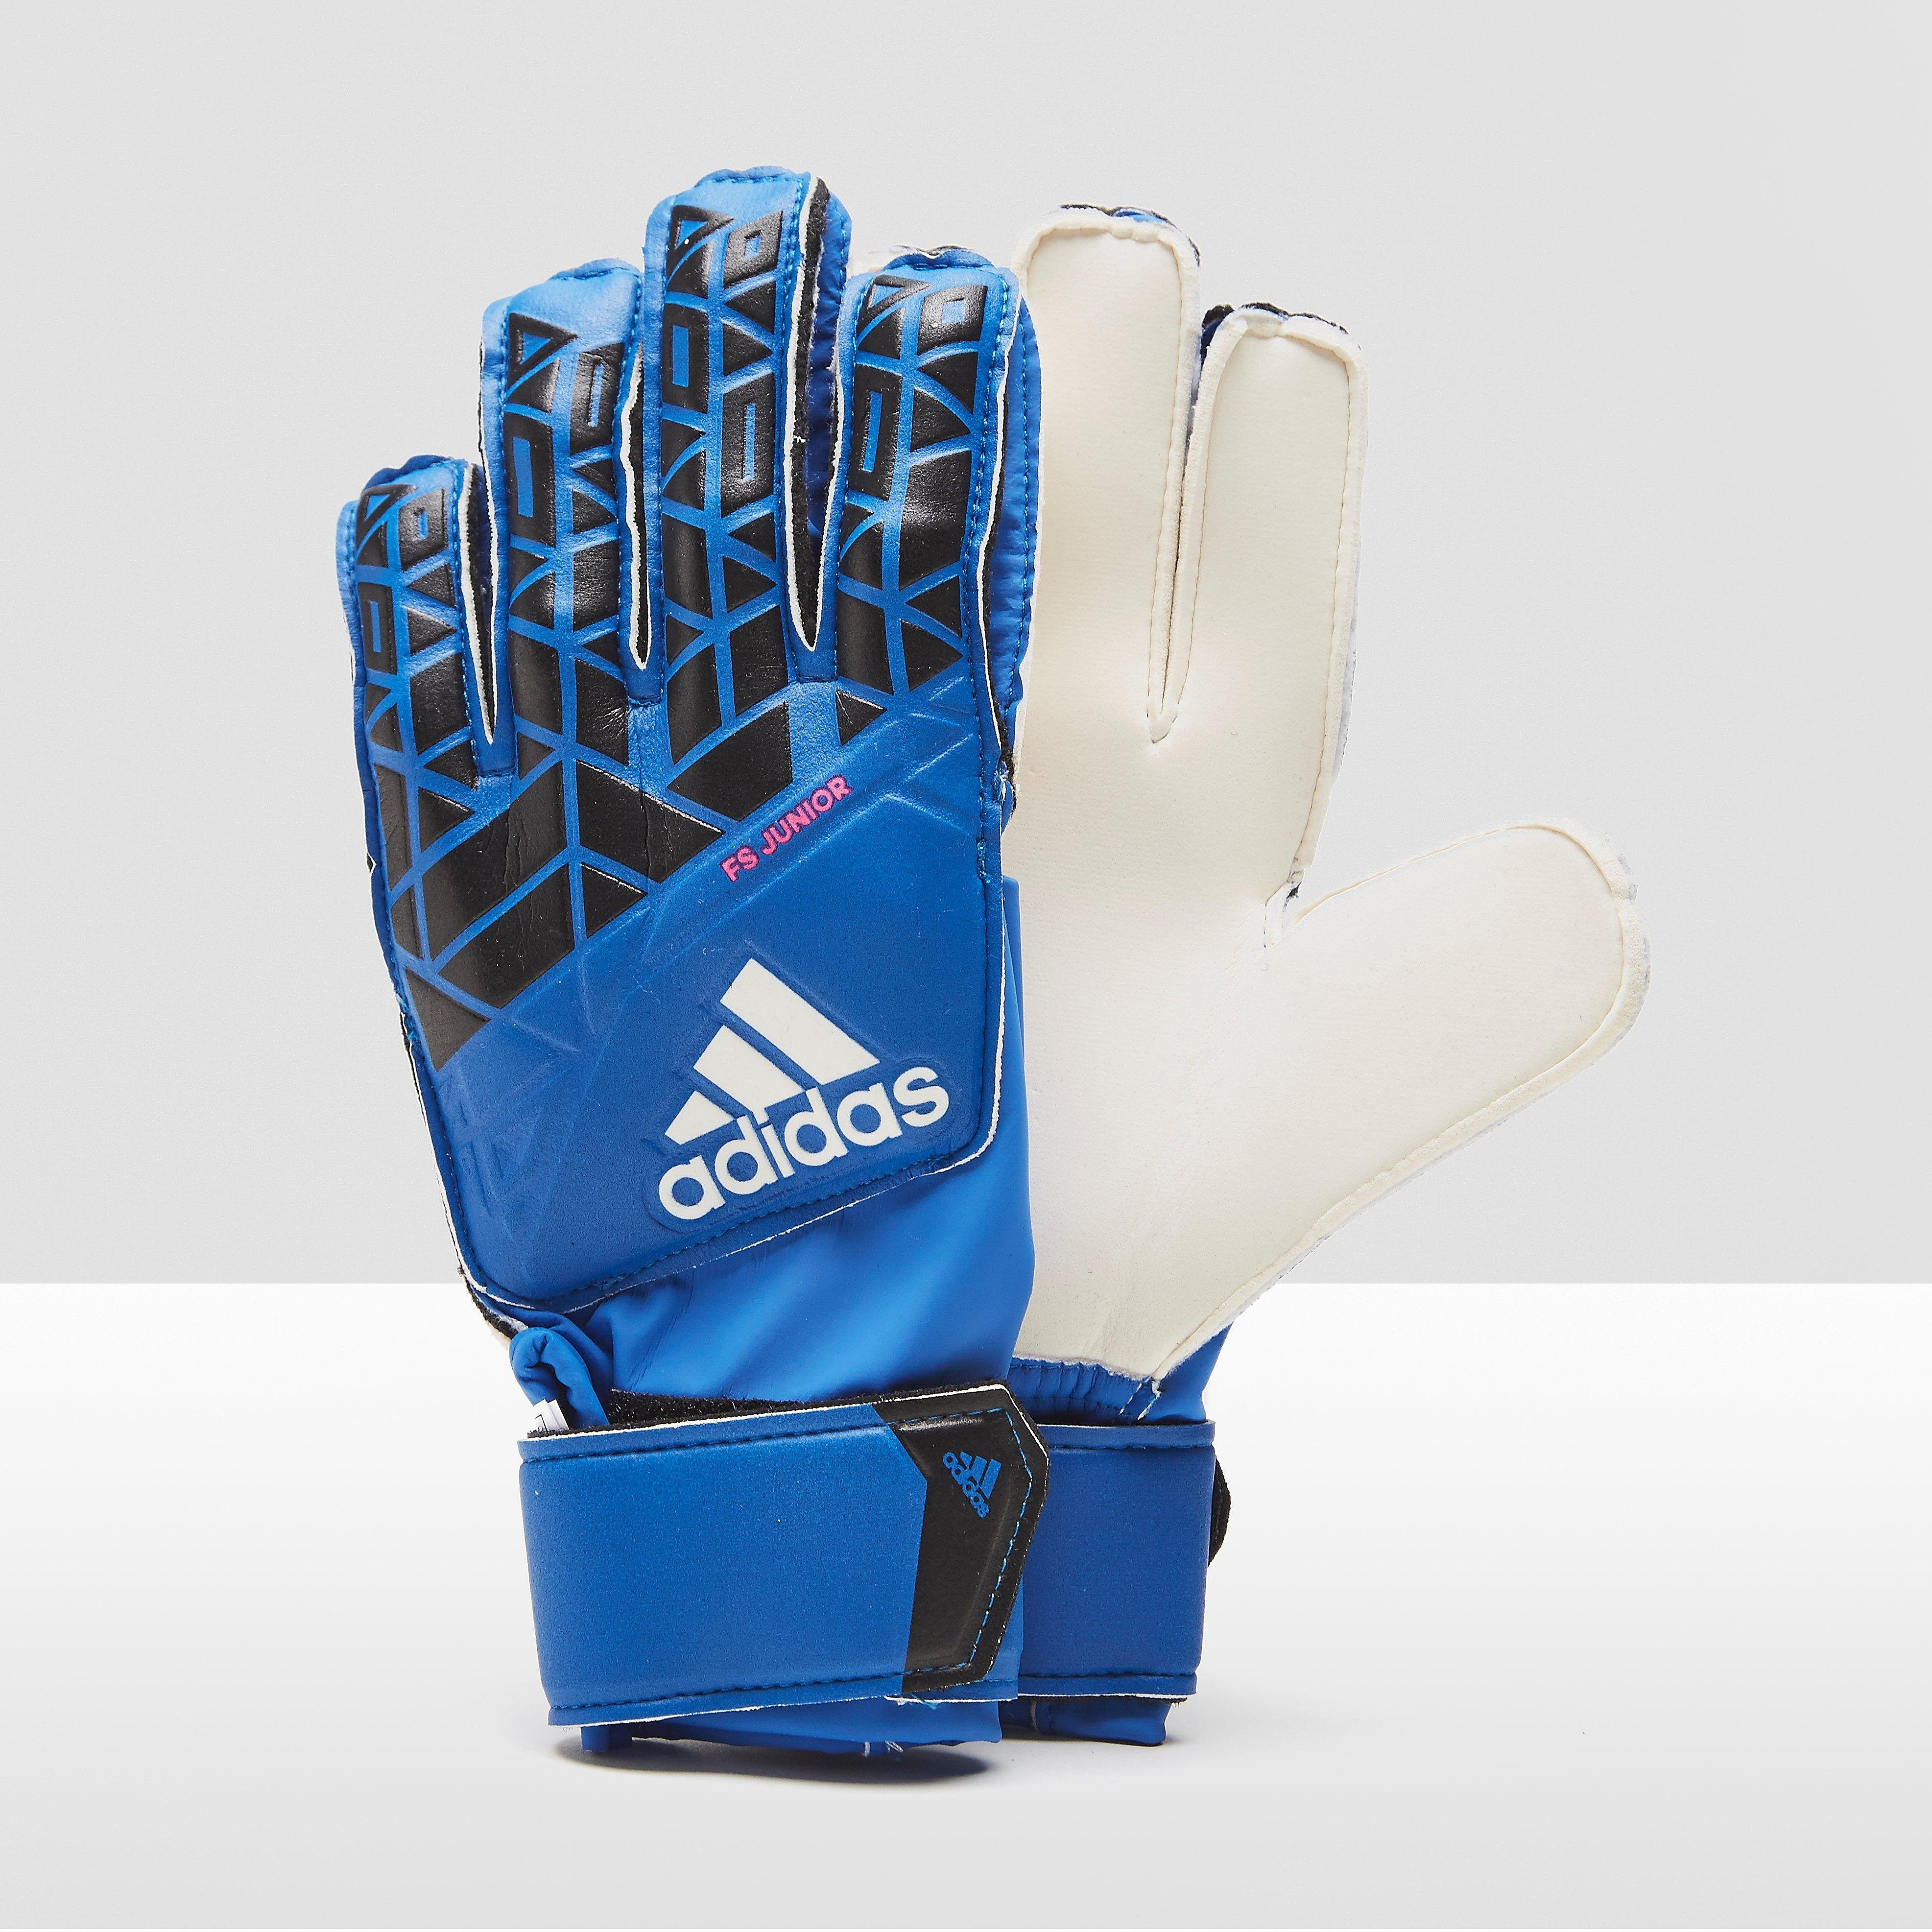 ADIDAS ACE FINGERSAVE KIDS